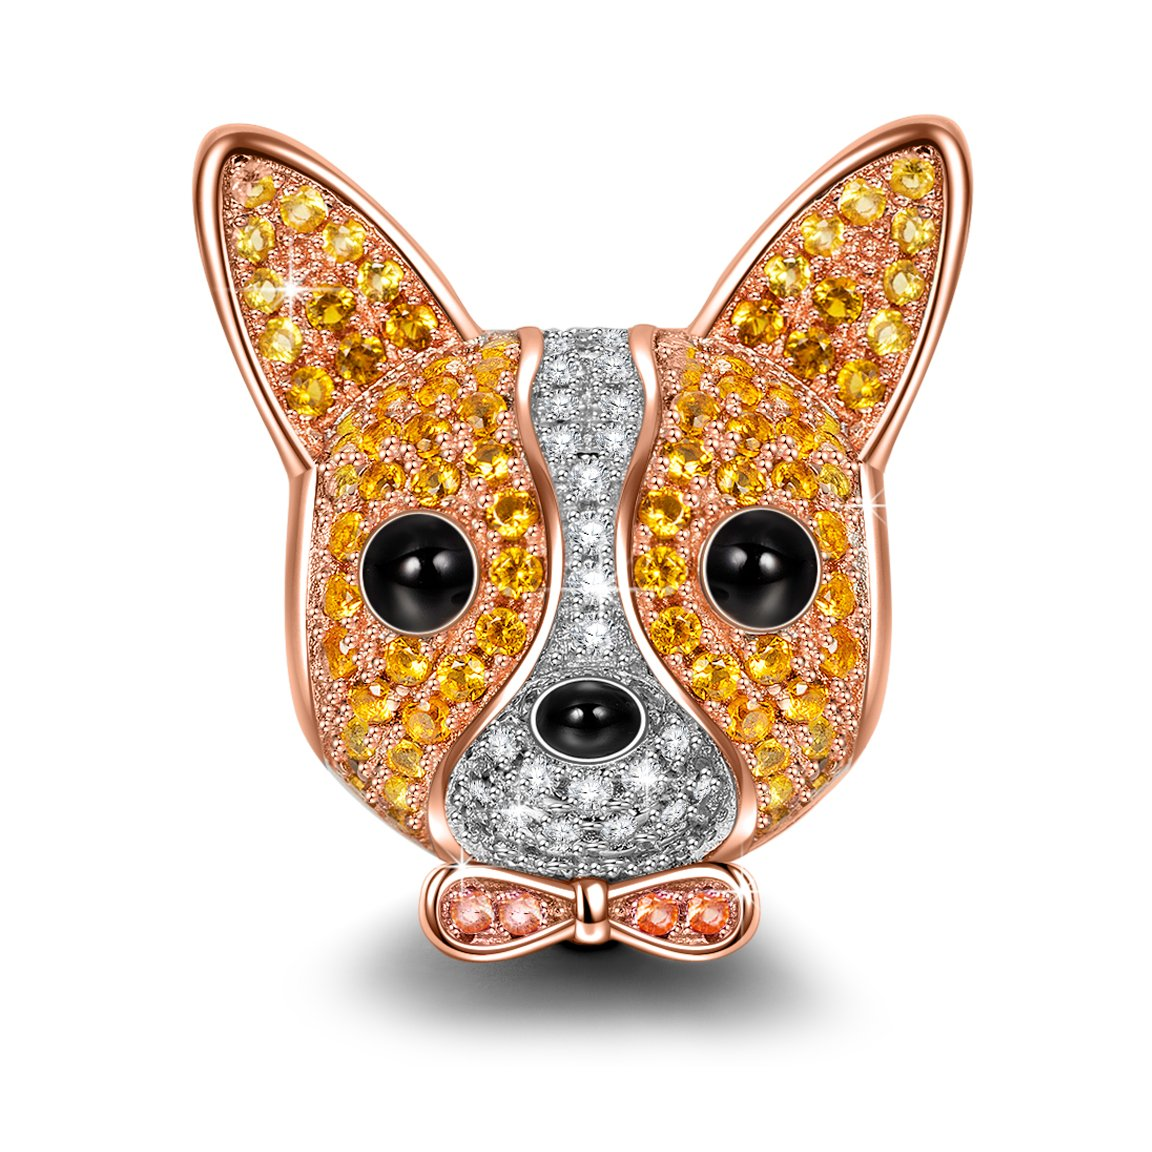 NINAQUEEN Chihuahua 925 Sterling Silver Puppy Dog Animal Bead Charm with Cubic Zirconia for Pandöra Charms Bracelet Jewelry Accessory Birthday for Teen Girls Kids Her Women Wife Mom by NINAQUEEN (Image #1)